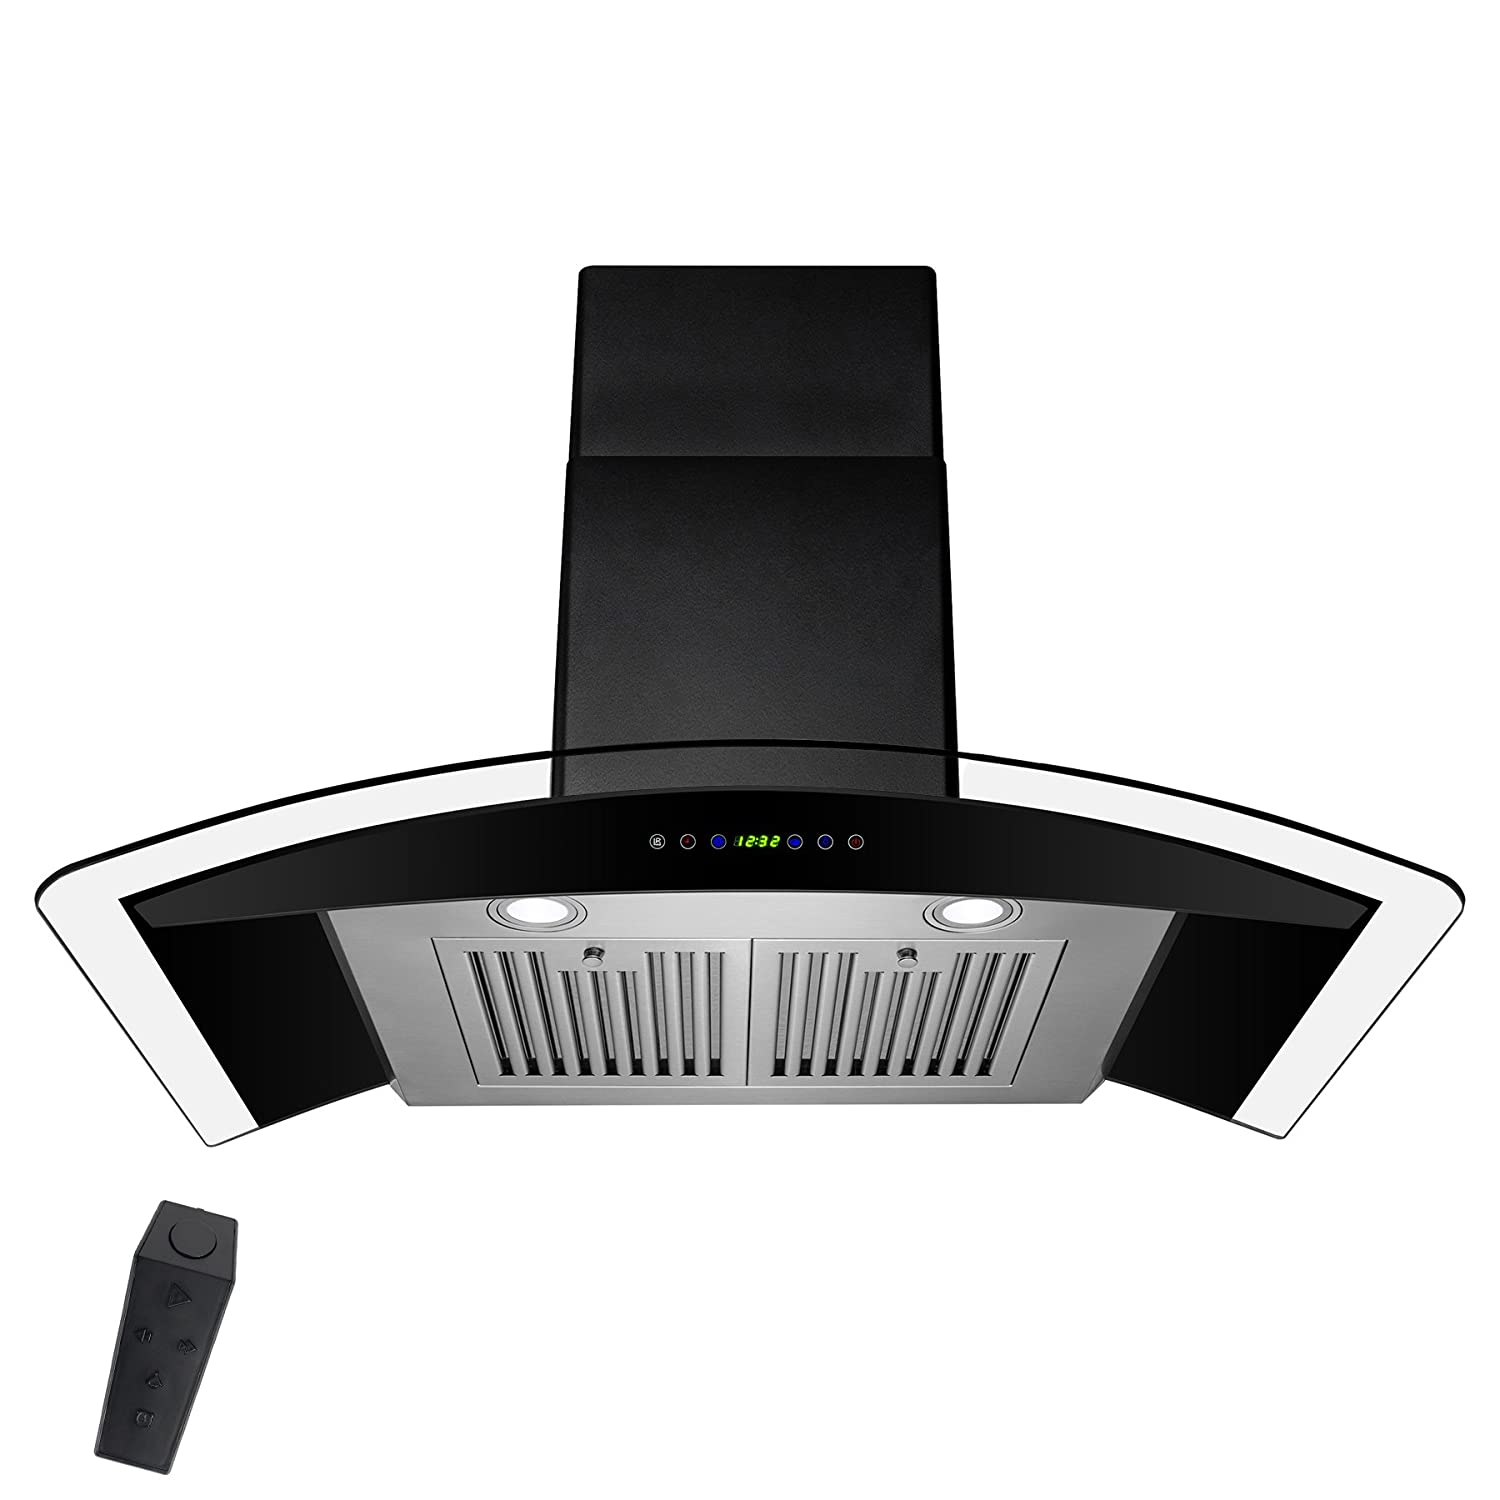 AKDY 30' Stainless Steel Tempered Glass Wall Mount Kitchen Cooking Vent Range Hood With Remote Control